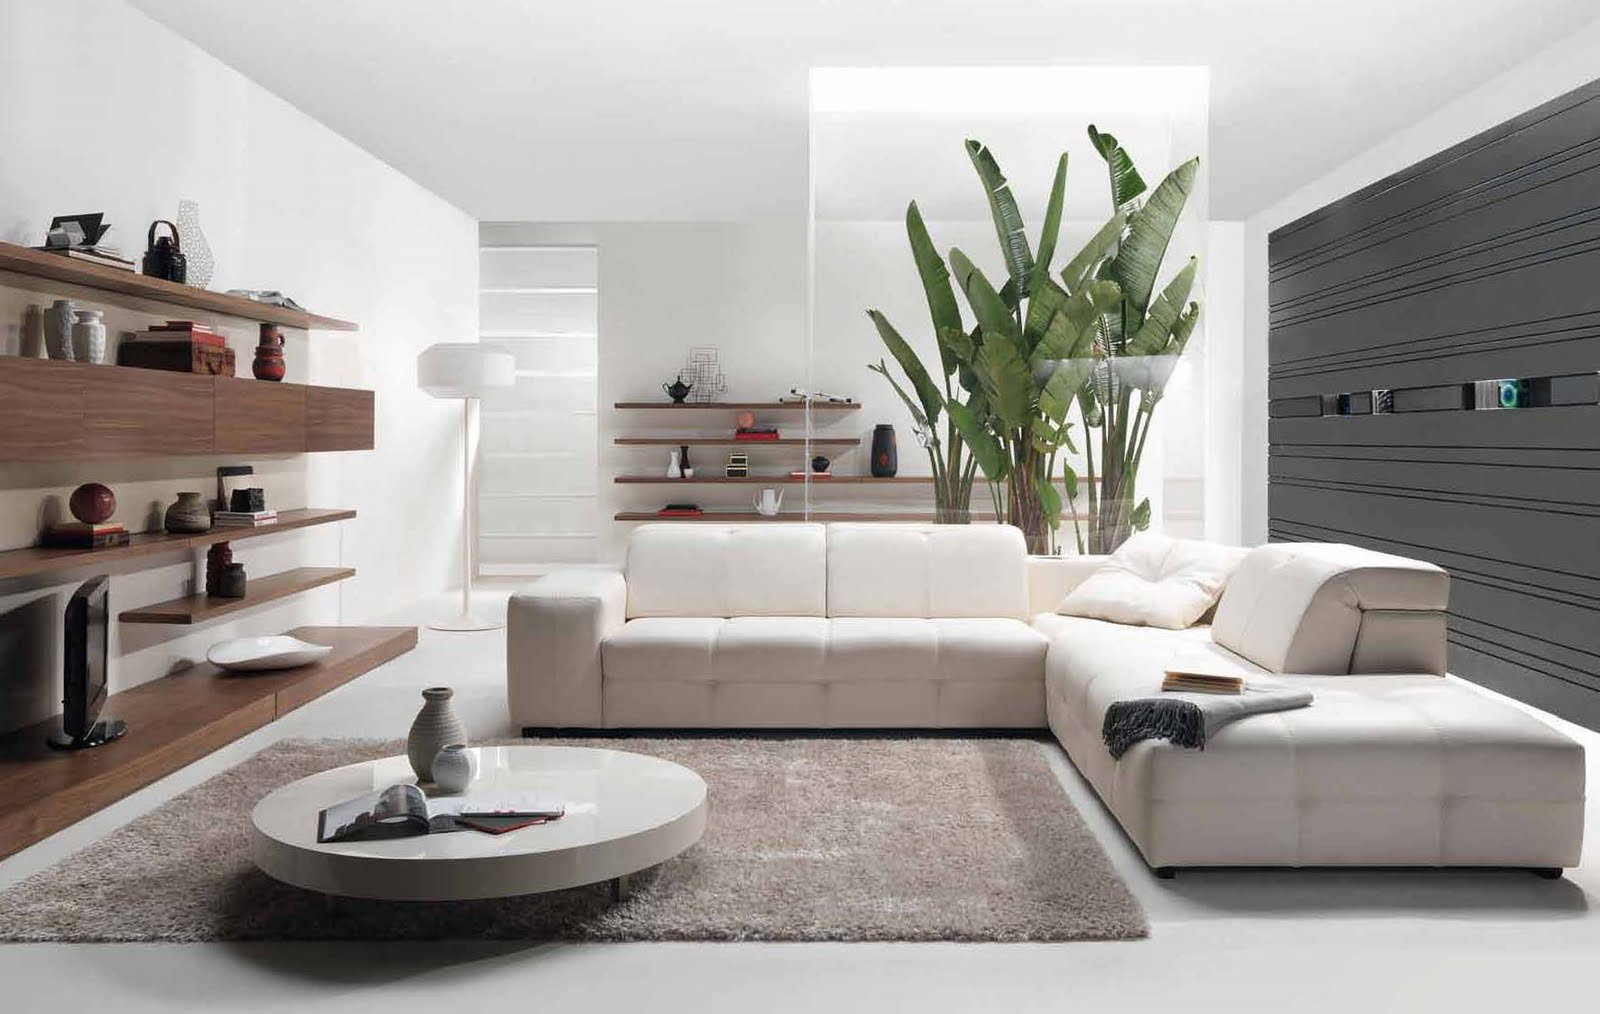 Future House Design: Modern Living Room Interior Design ...